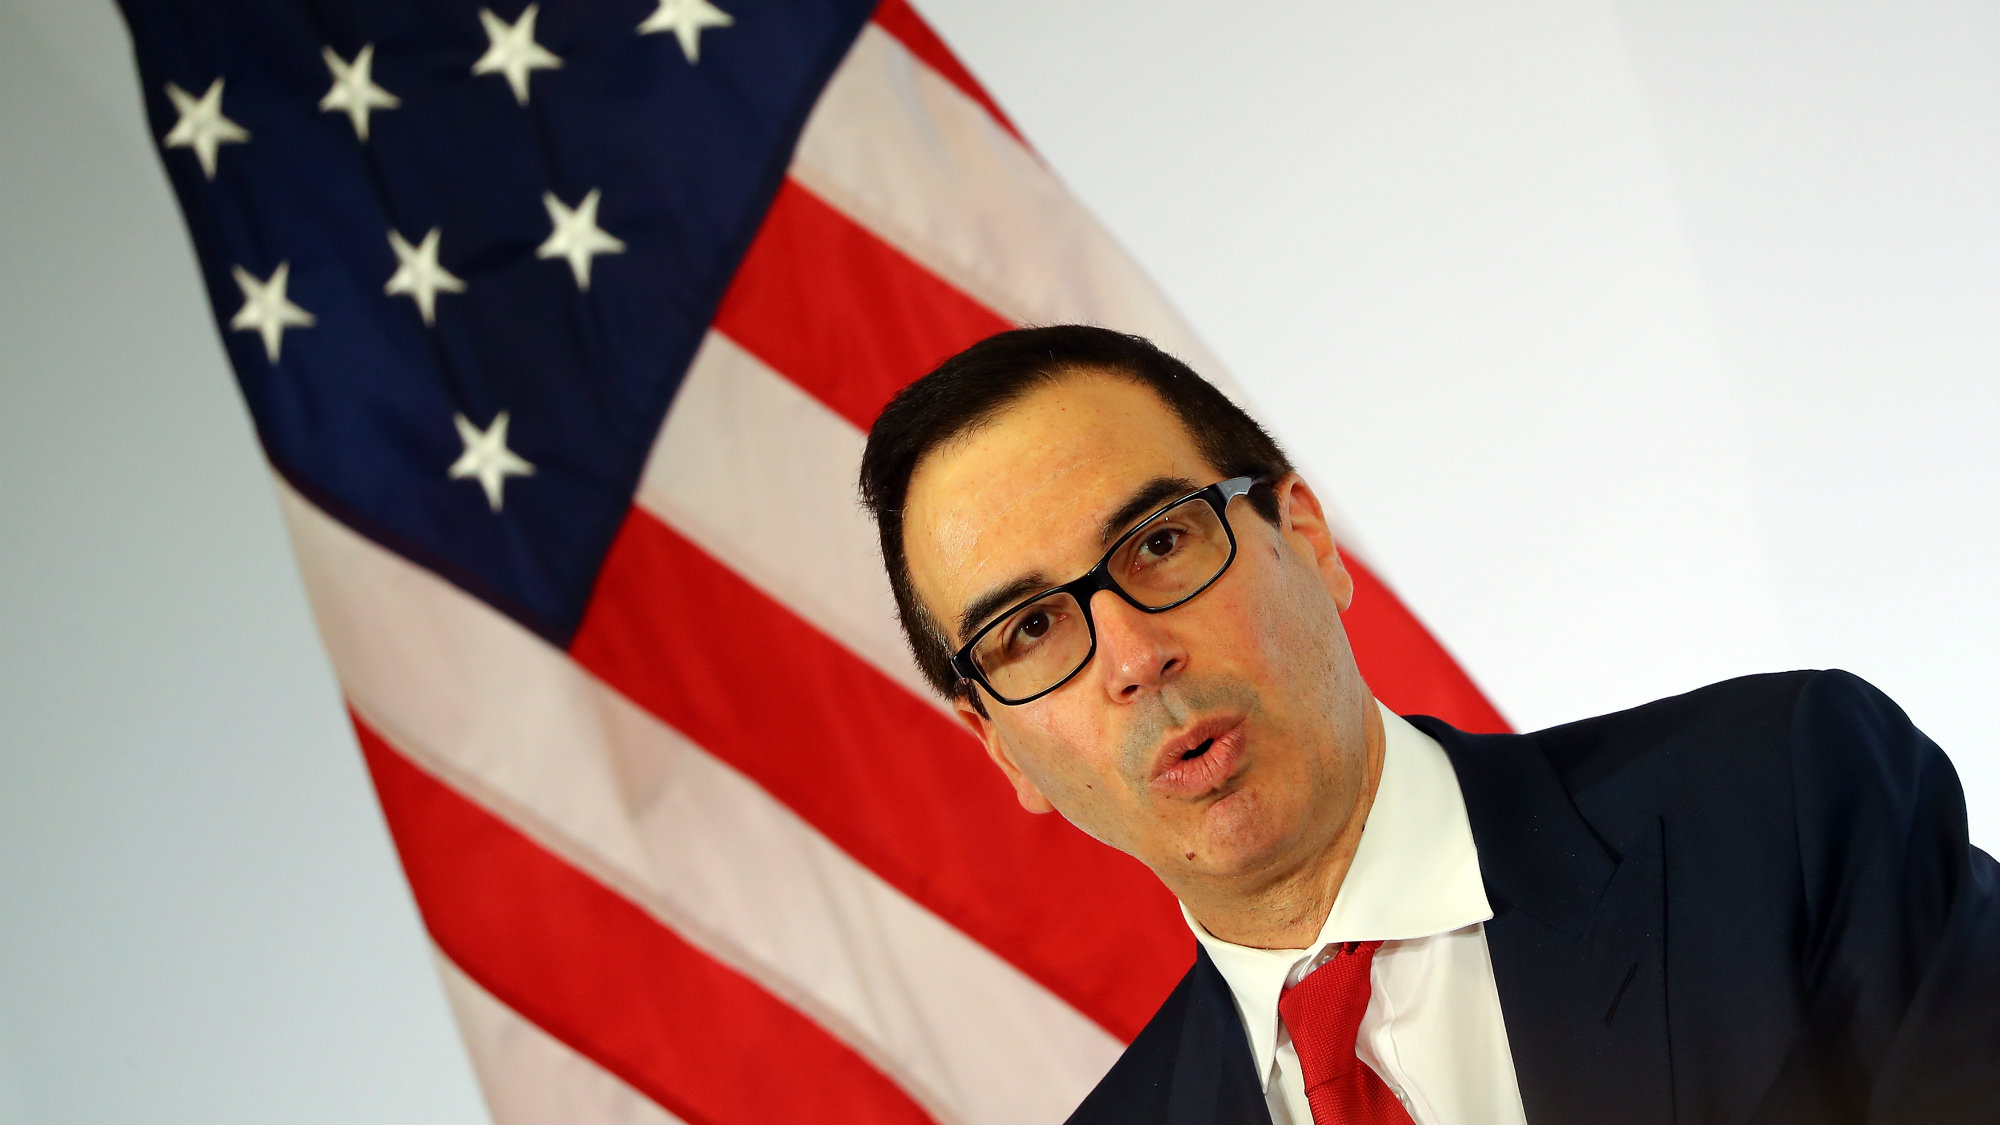 U.S. Treasury Secretary Steve Mnuchin addresses a news conference at the G20 Finance Ministers and Central Bank Governors Meeting in Baden-Baden, Germany, March 18, 2017.